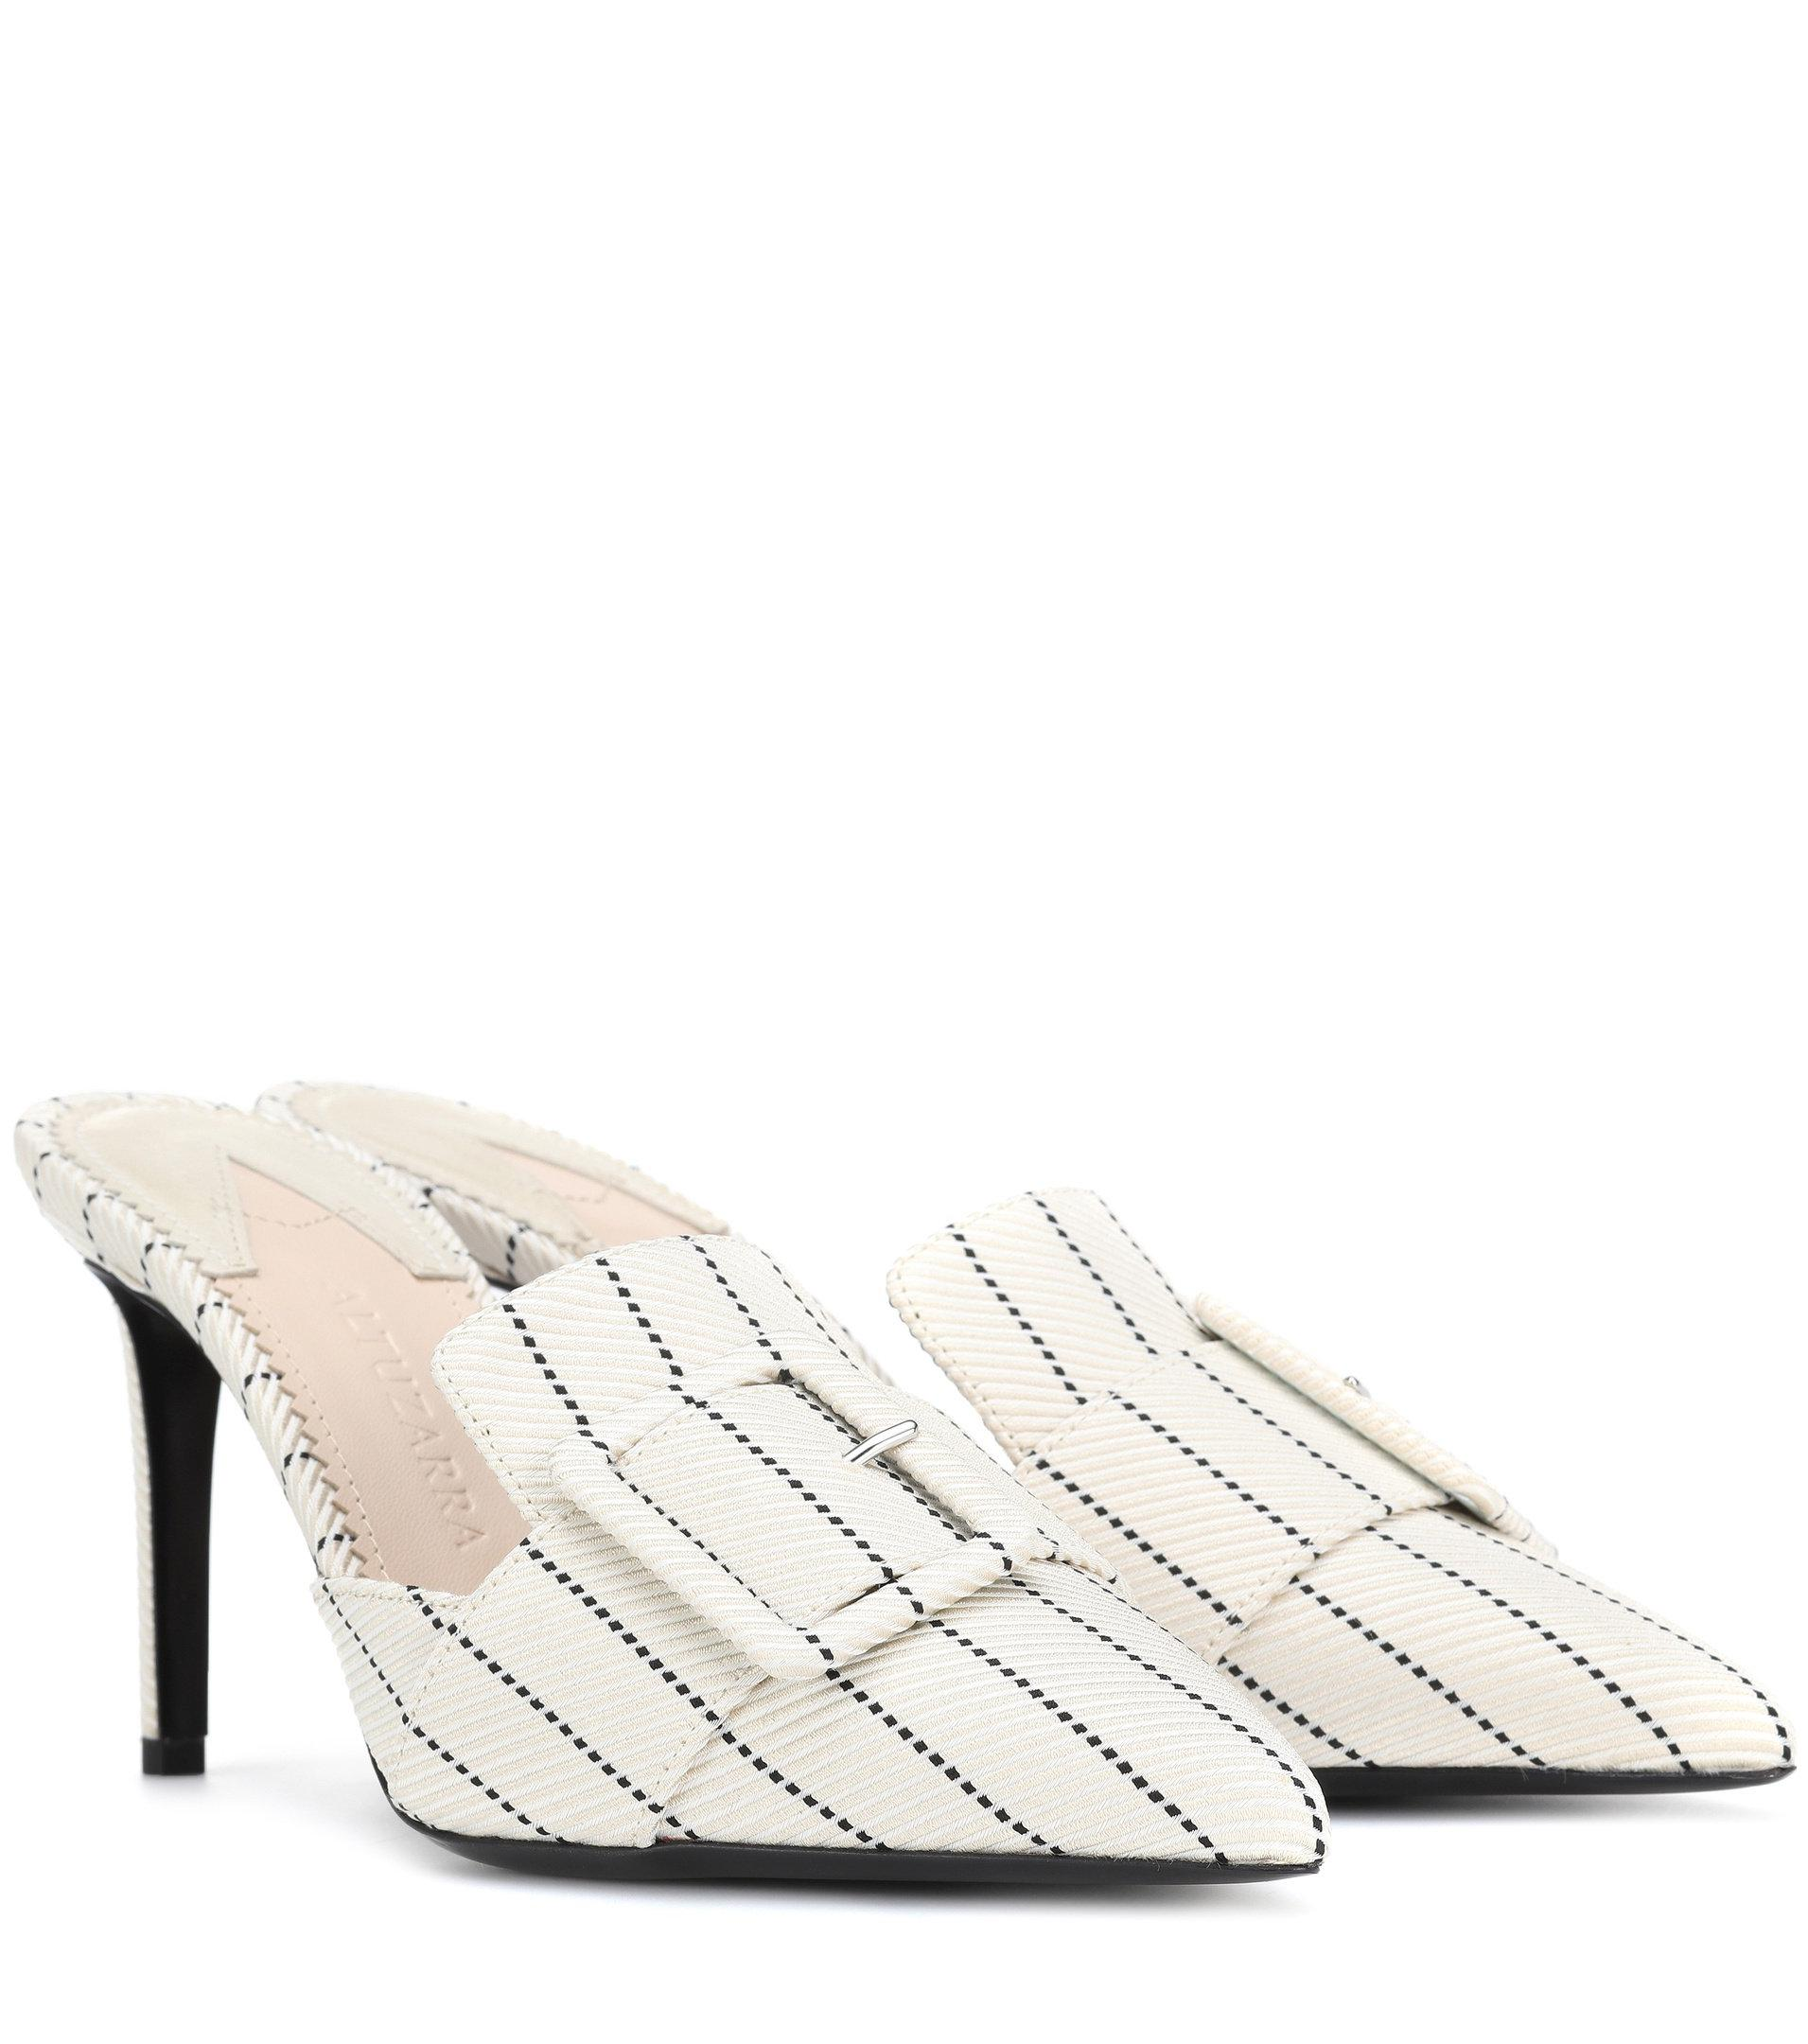 Altuzarra Izy striped mules